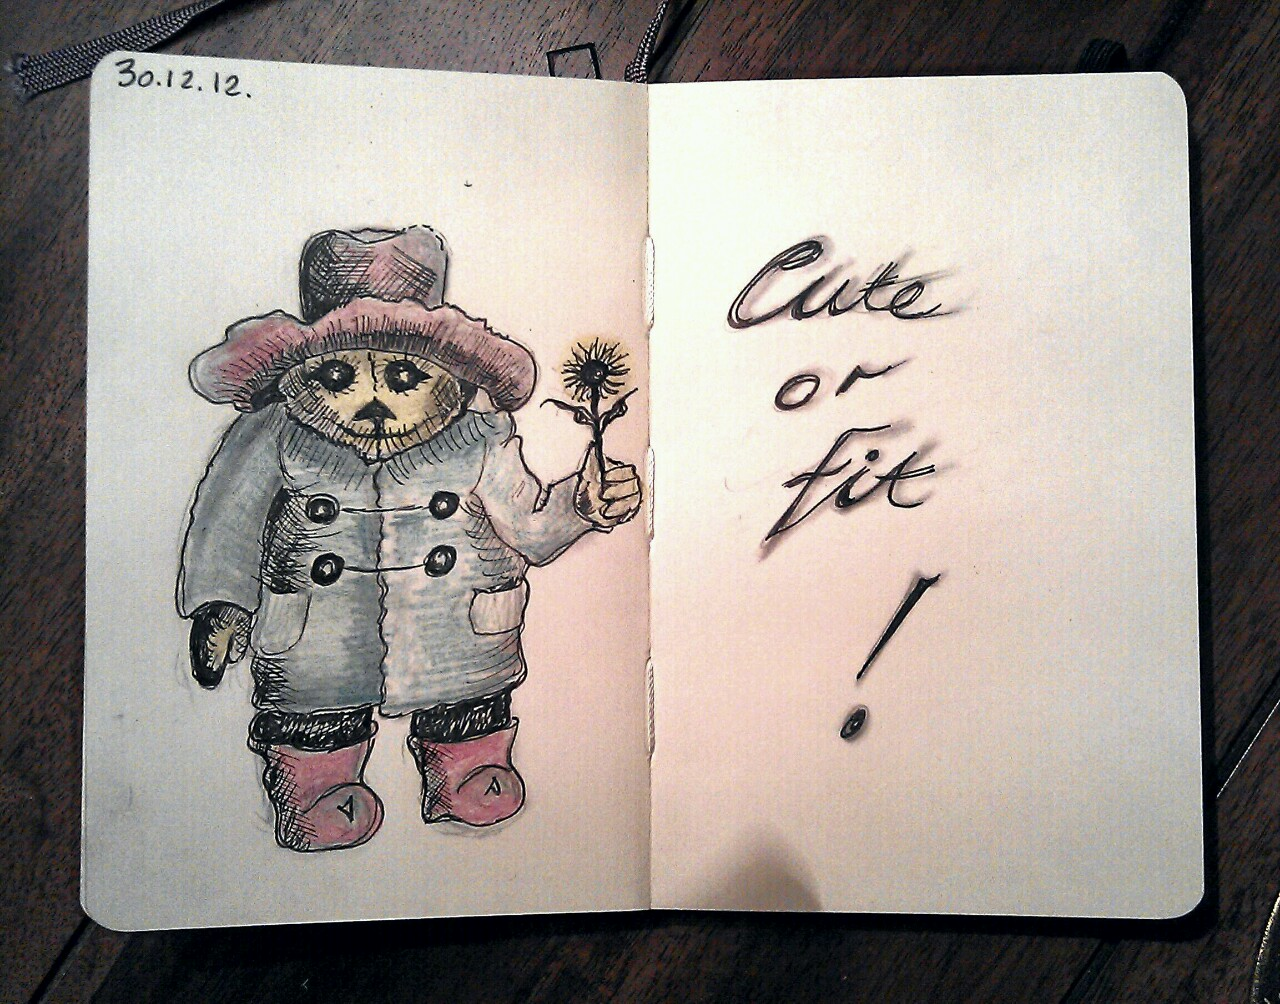 365 drawings later … day 334 … cute [this one was drawn by my mum, who loves paddington bear, and her nickname is daisy]